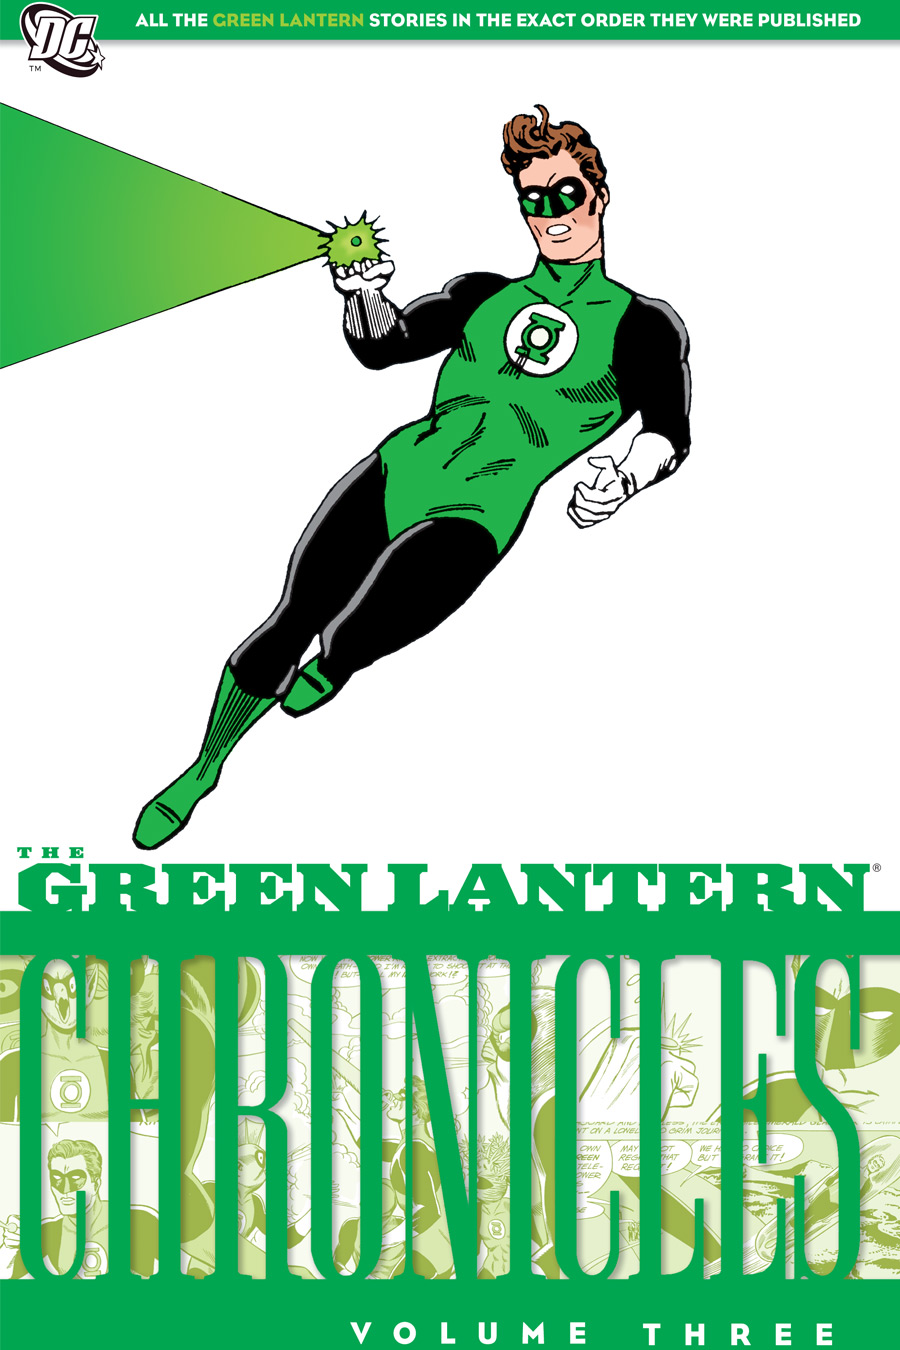 The Green Lantern Chronicles Vol. 3 (Collected)